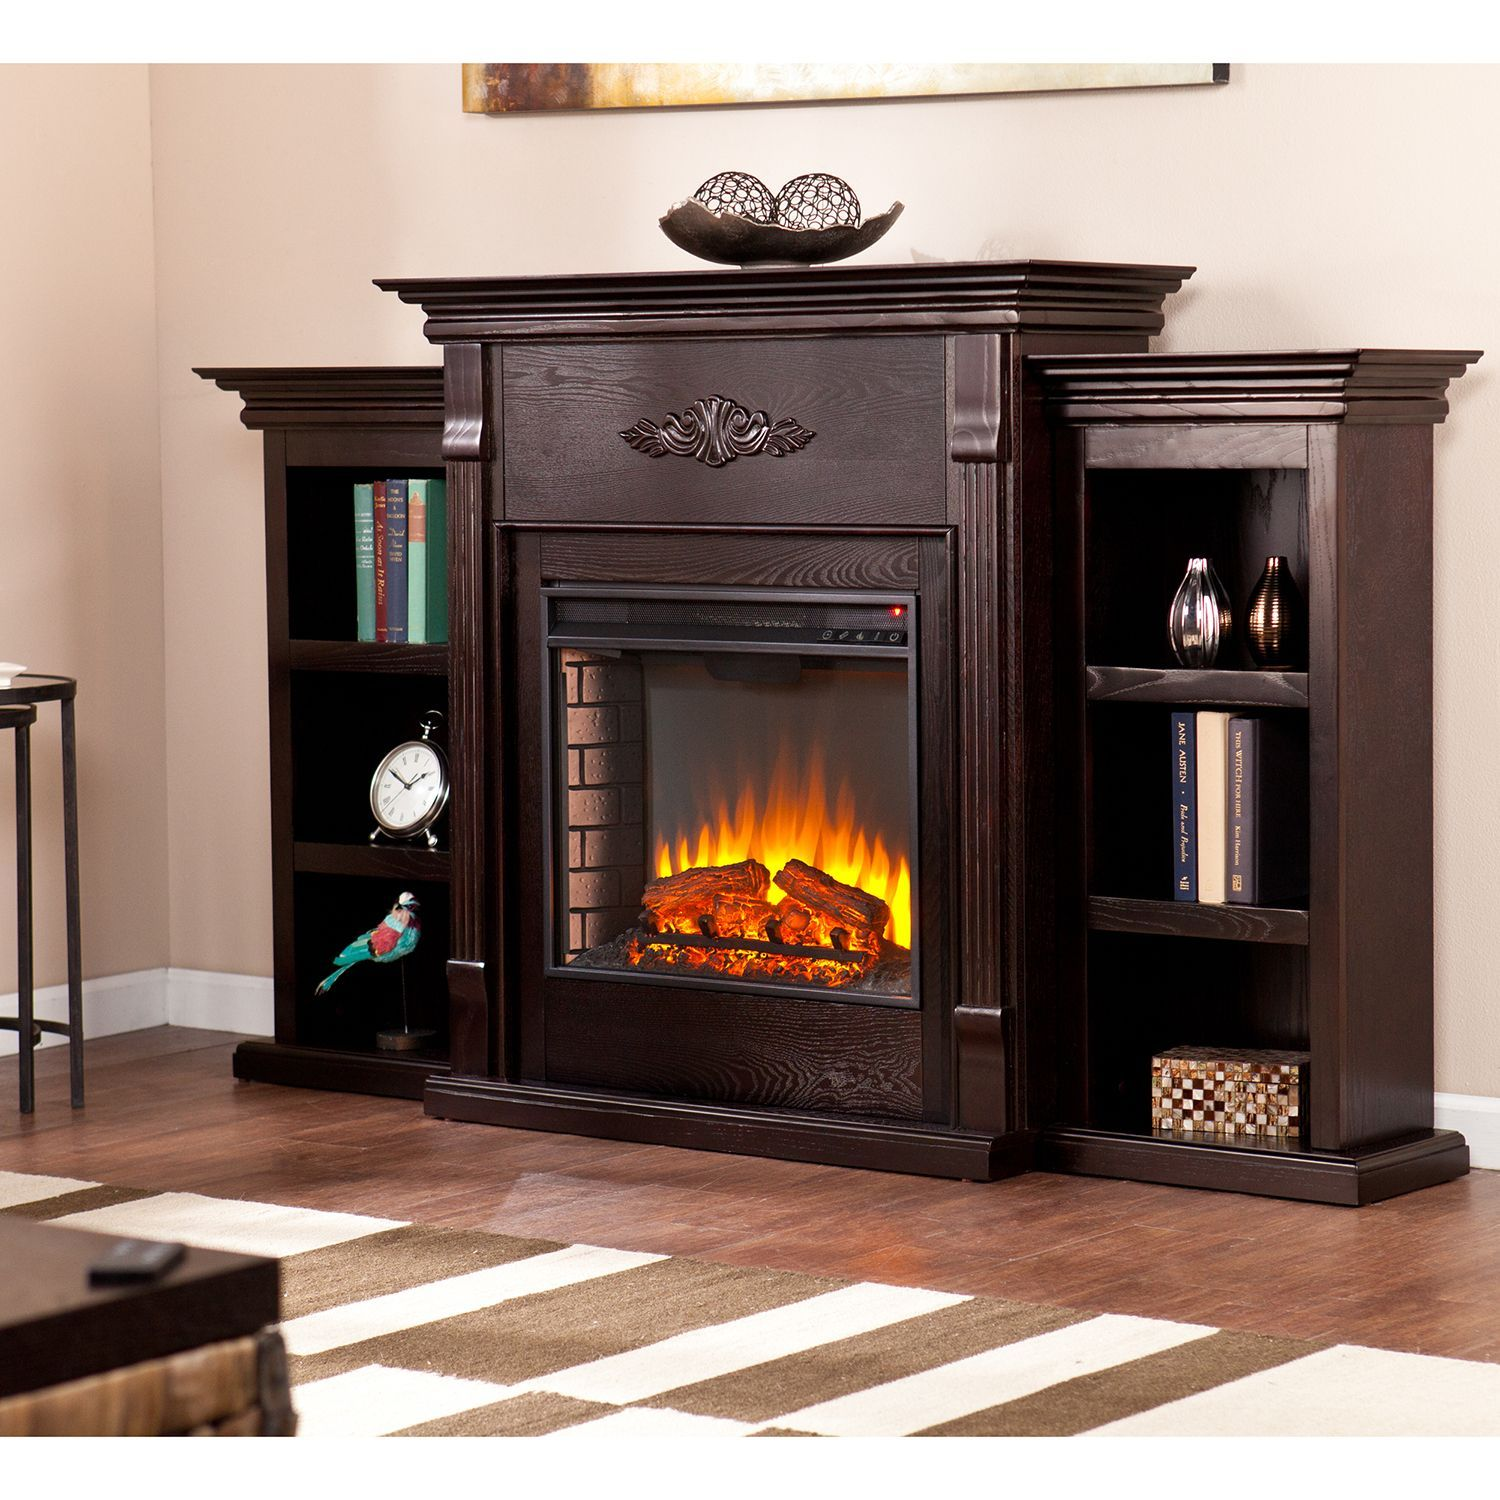 Emerson Electric Fireplace Choose Color Electric Fireplace